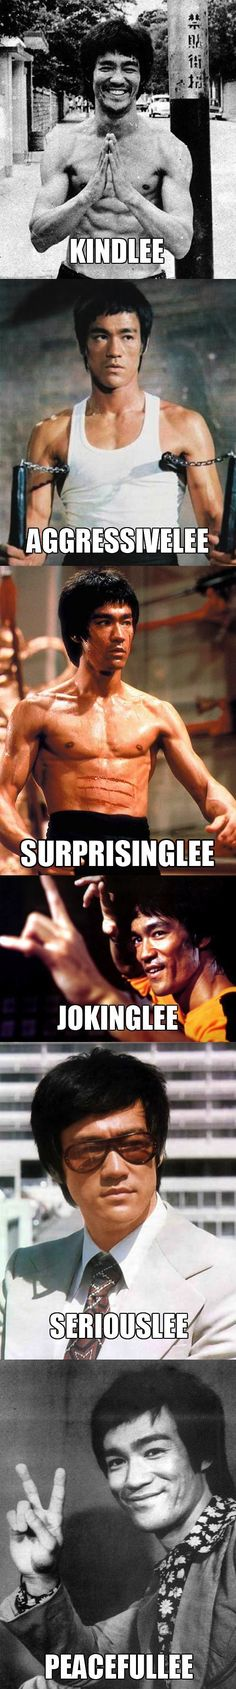 The many sides of Bruce Lee - One Stop Humor: Funny Pictures and Videos!